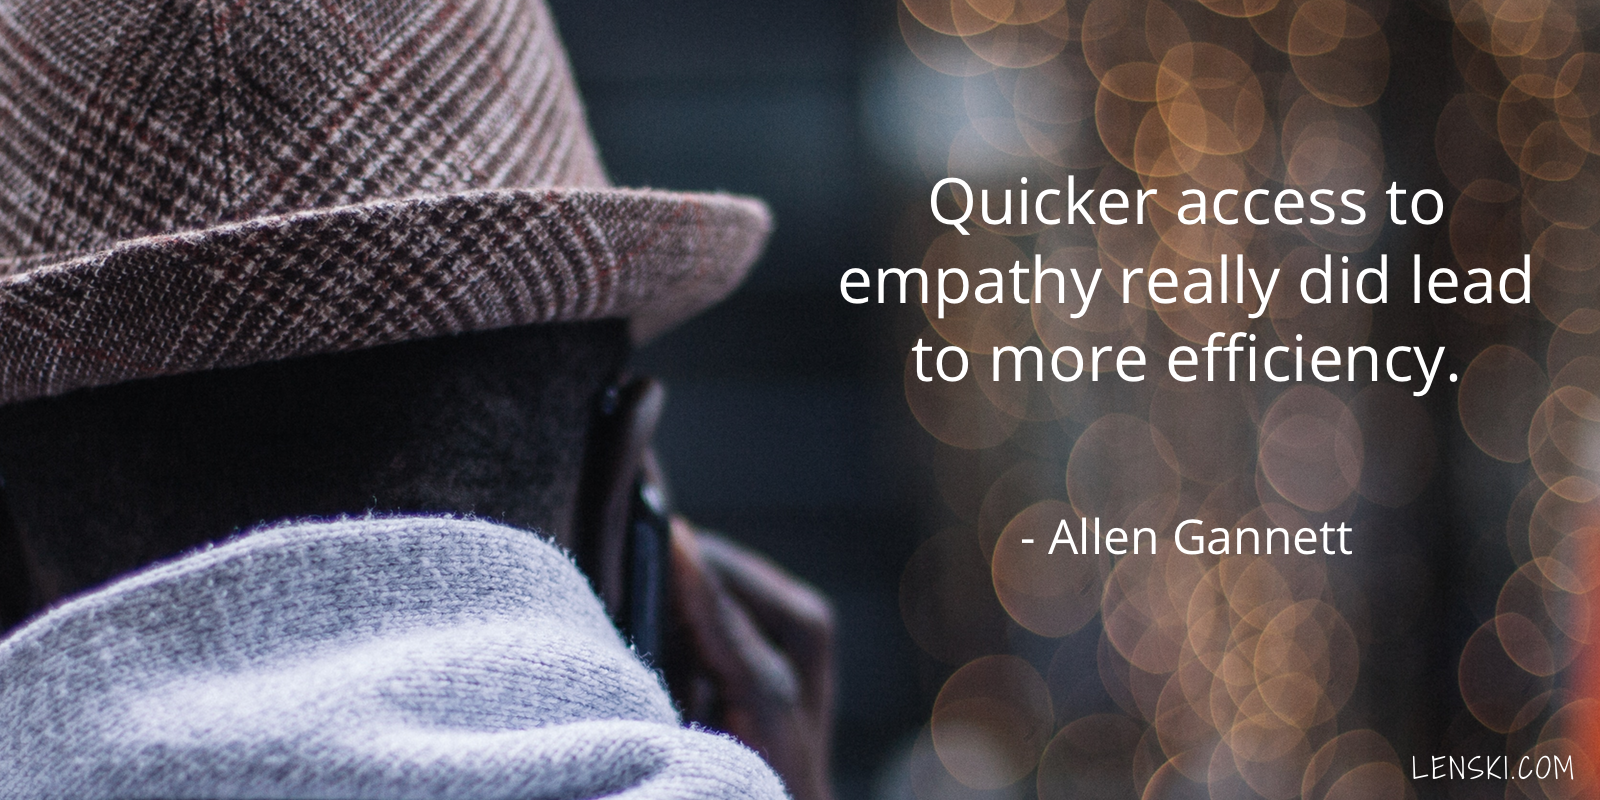 Quicker access to empathy really did lead to more efficiency. - Allen Gannett